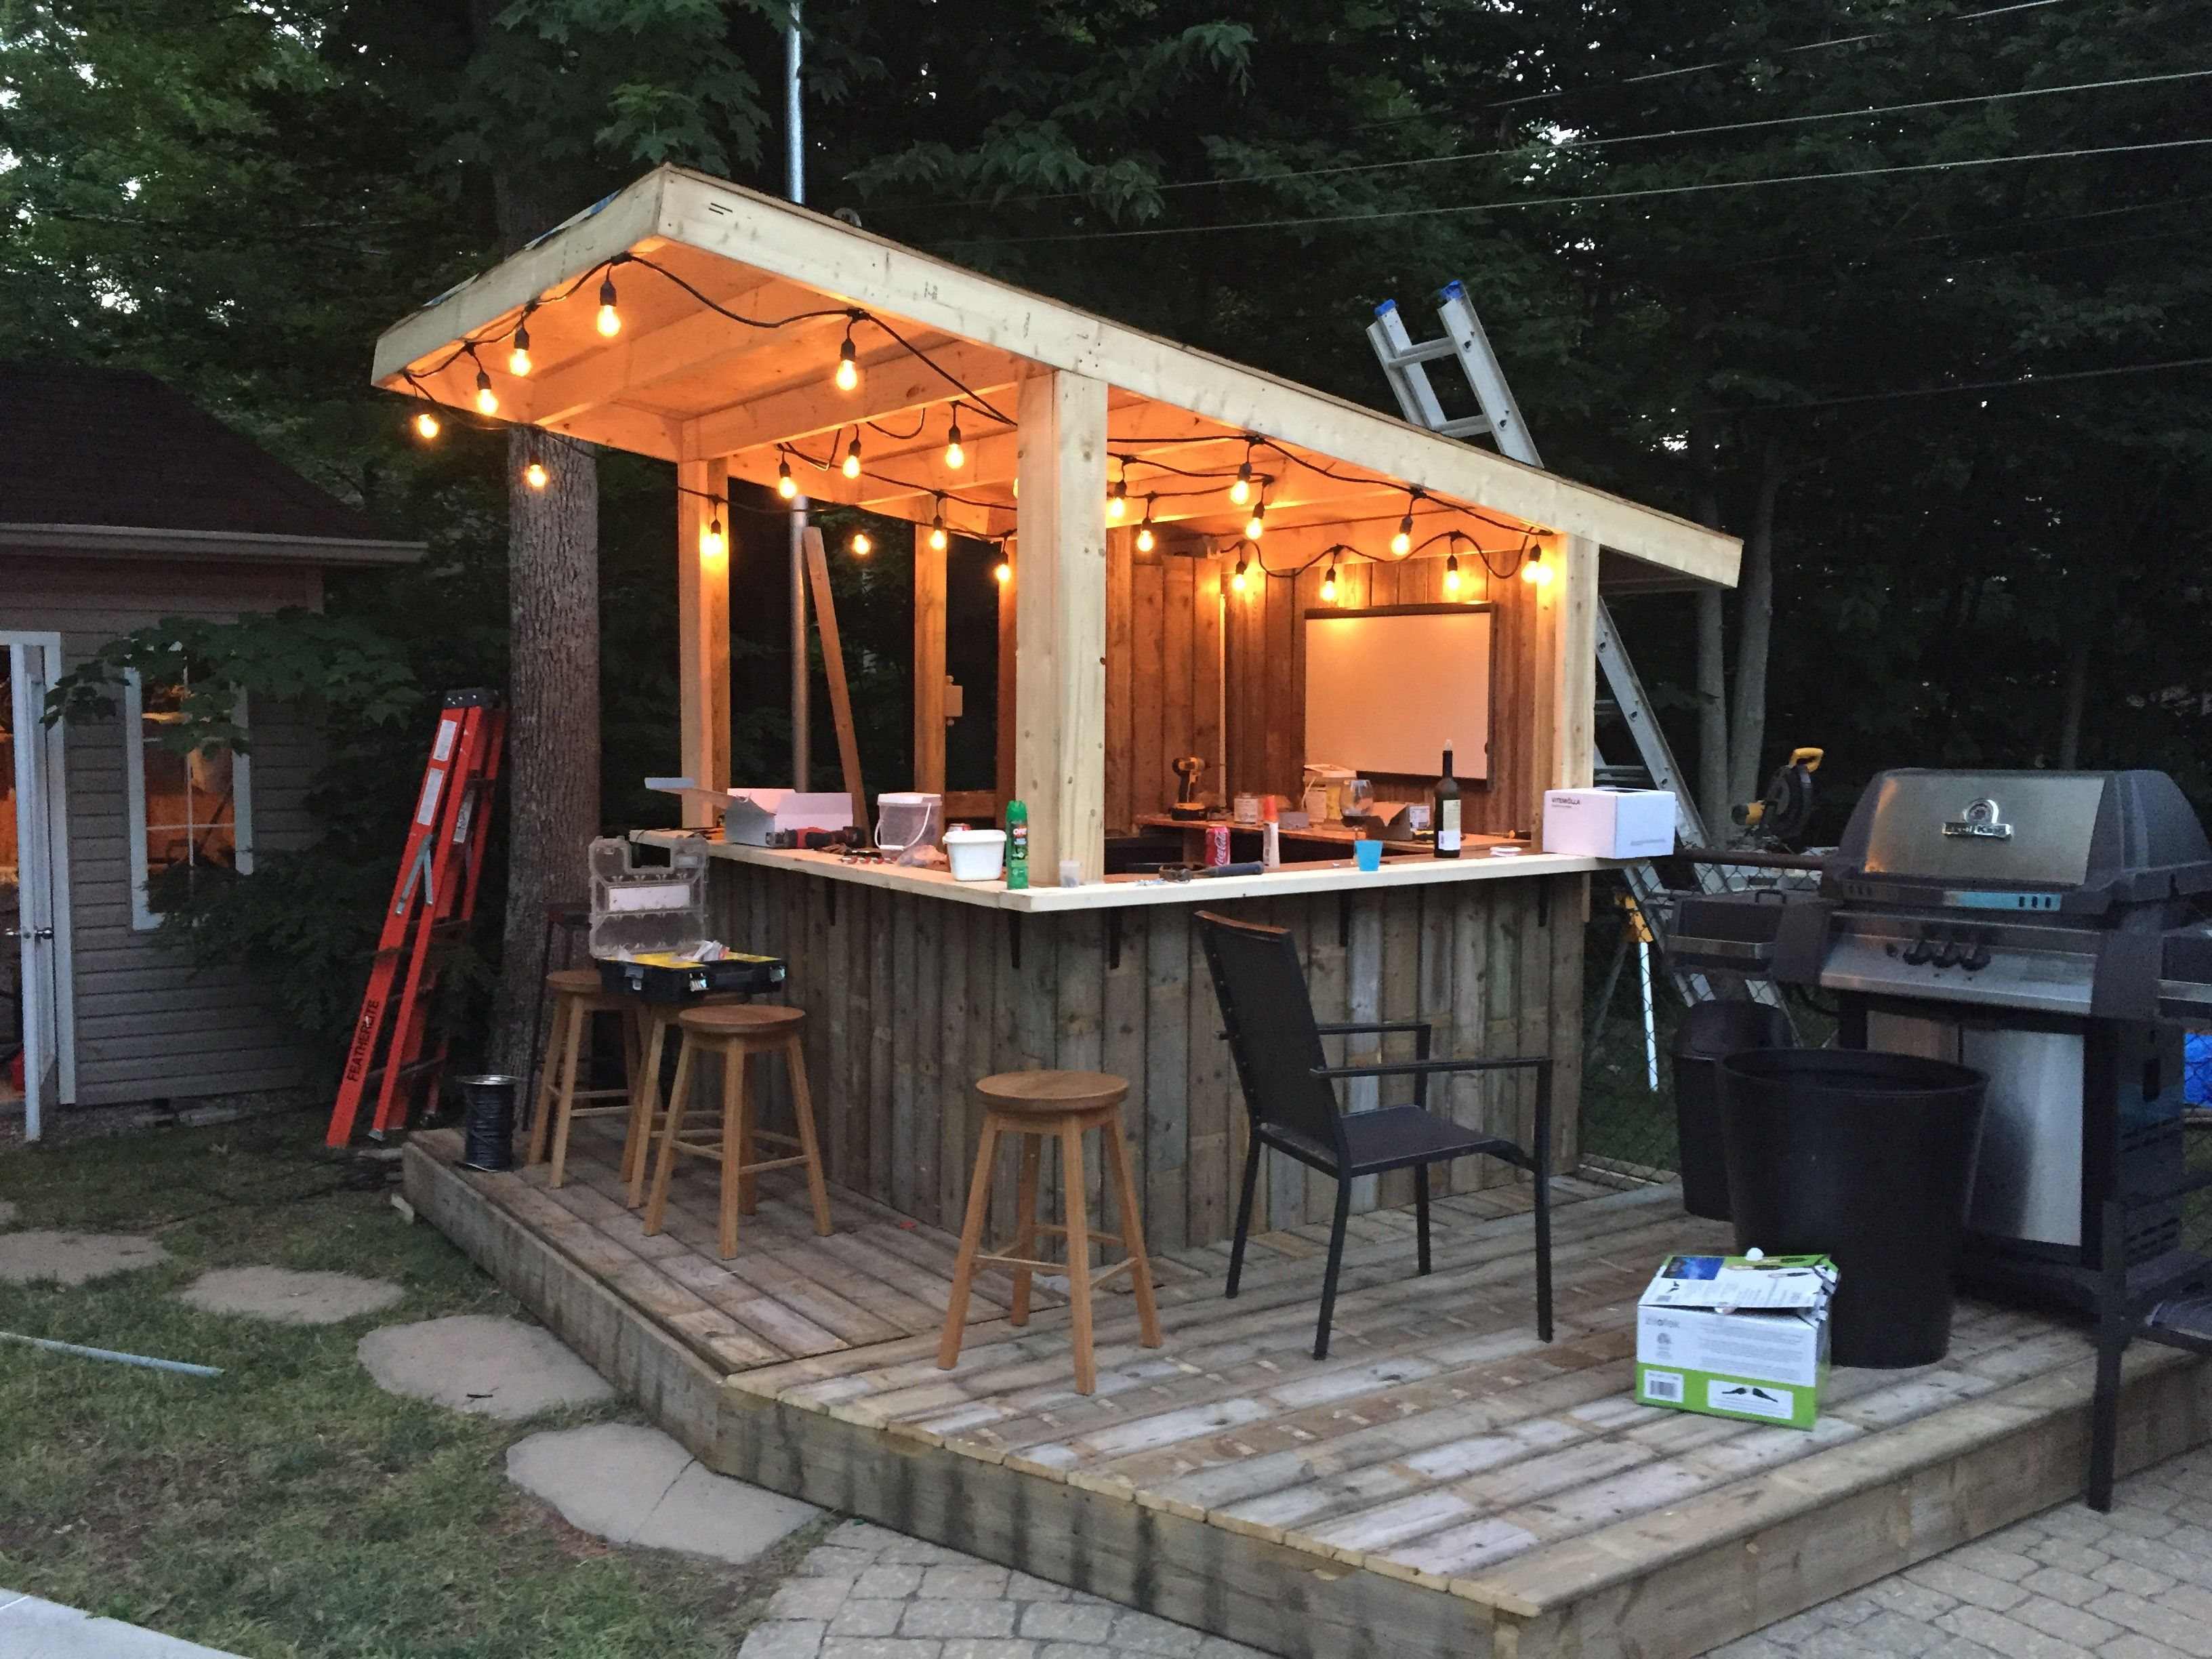 Best 25 Patio bar ideas on Pinterest